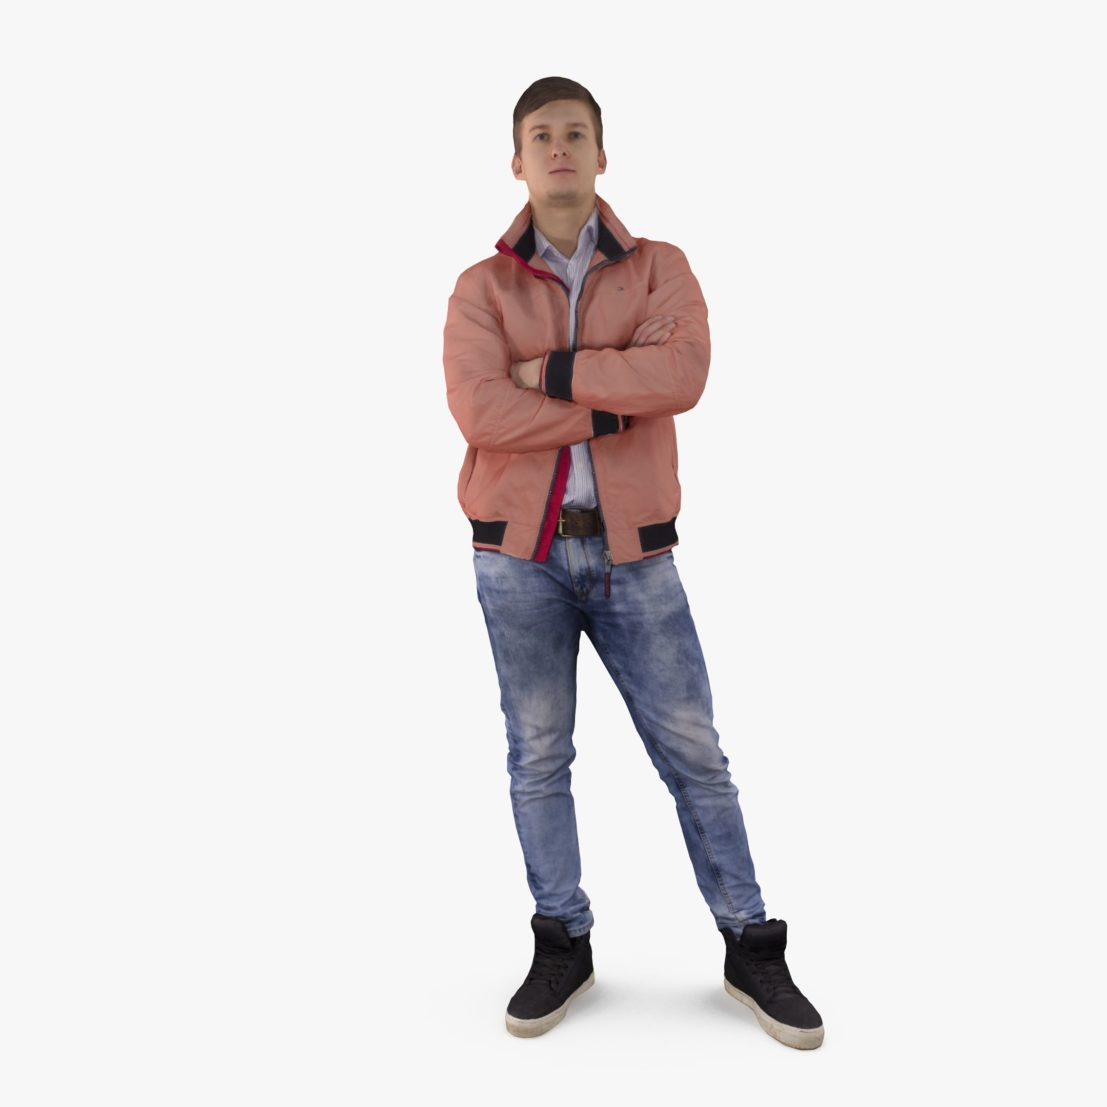 Urban Man in Jacket 3D Model | 3DTree Scanning Studio